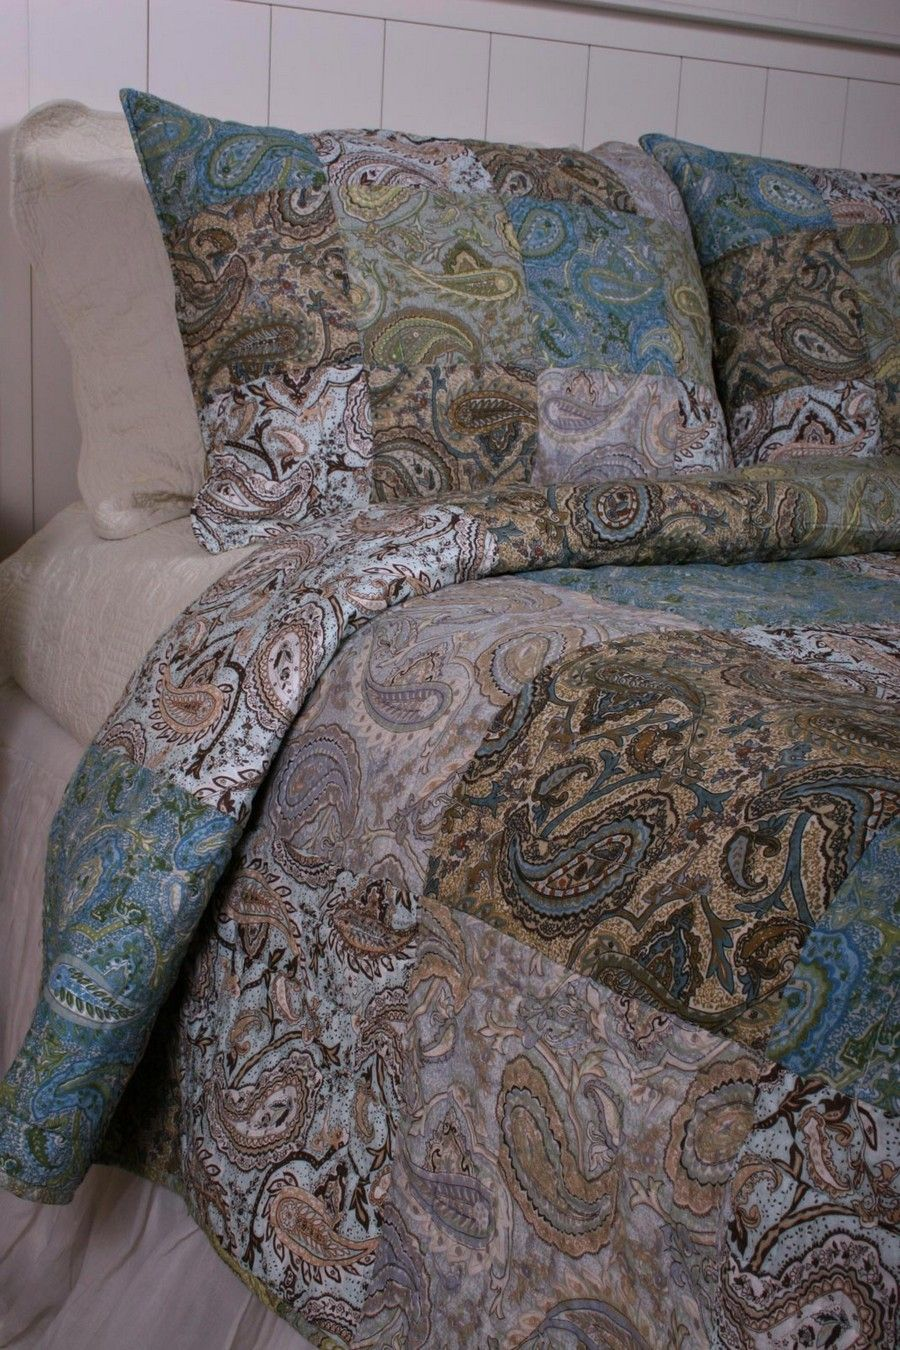 wonderful quilts print cover and cute harbor quilt sets bedding with sale king duvet blue blanket plum of twin paisley covers cotton red bedroom burgundy duvets design decorative chelsea green brown stores size comforter grey white set full house queen